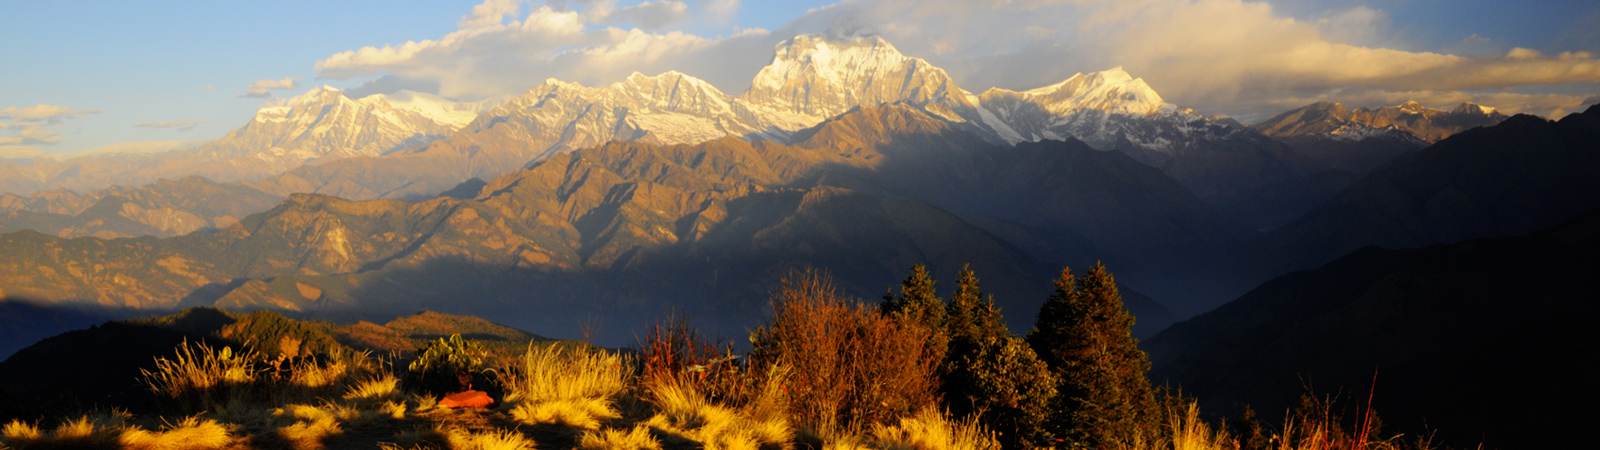 Sunrise in Poonhill,Ghorepani